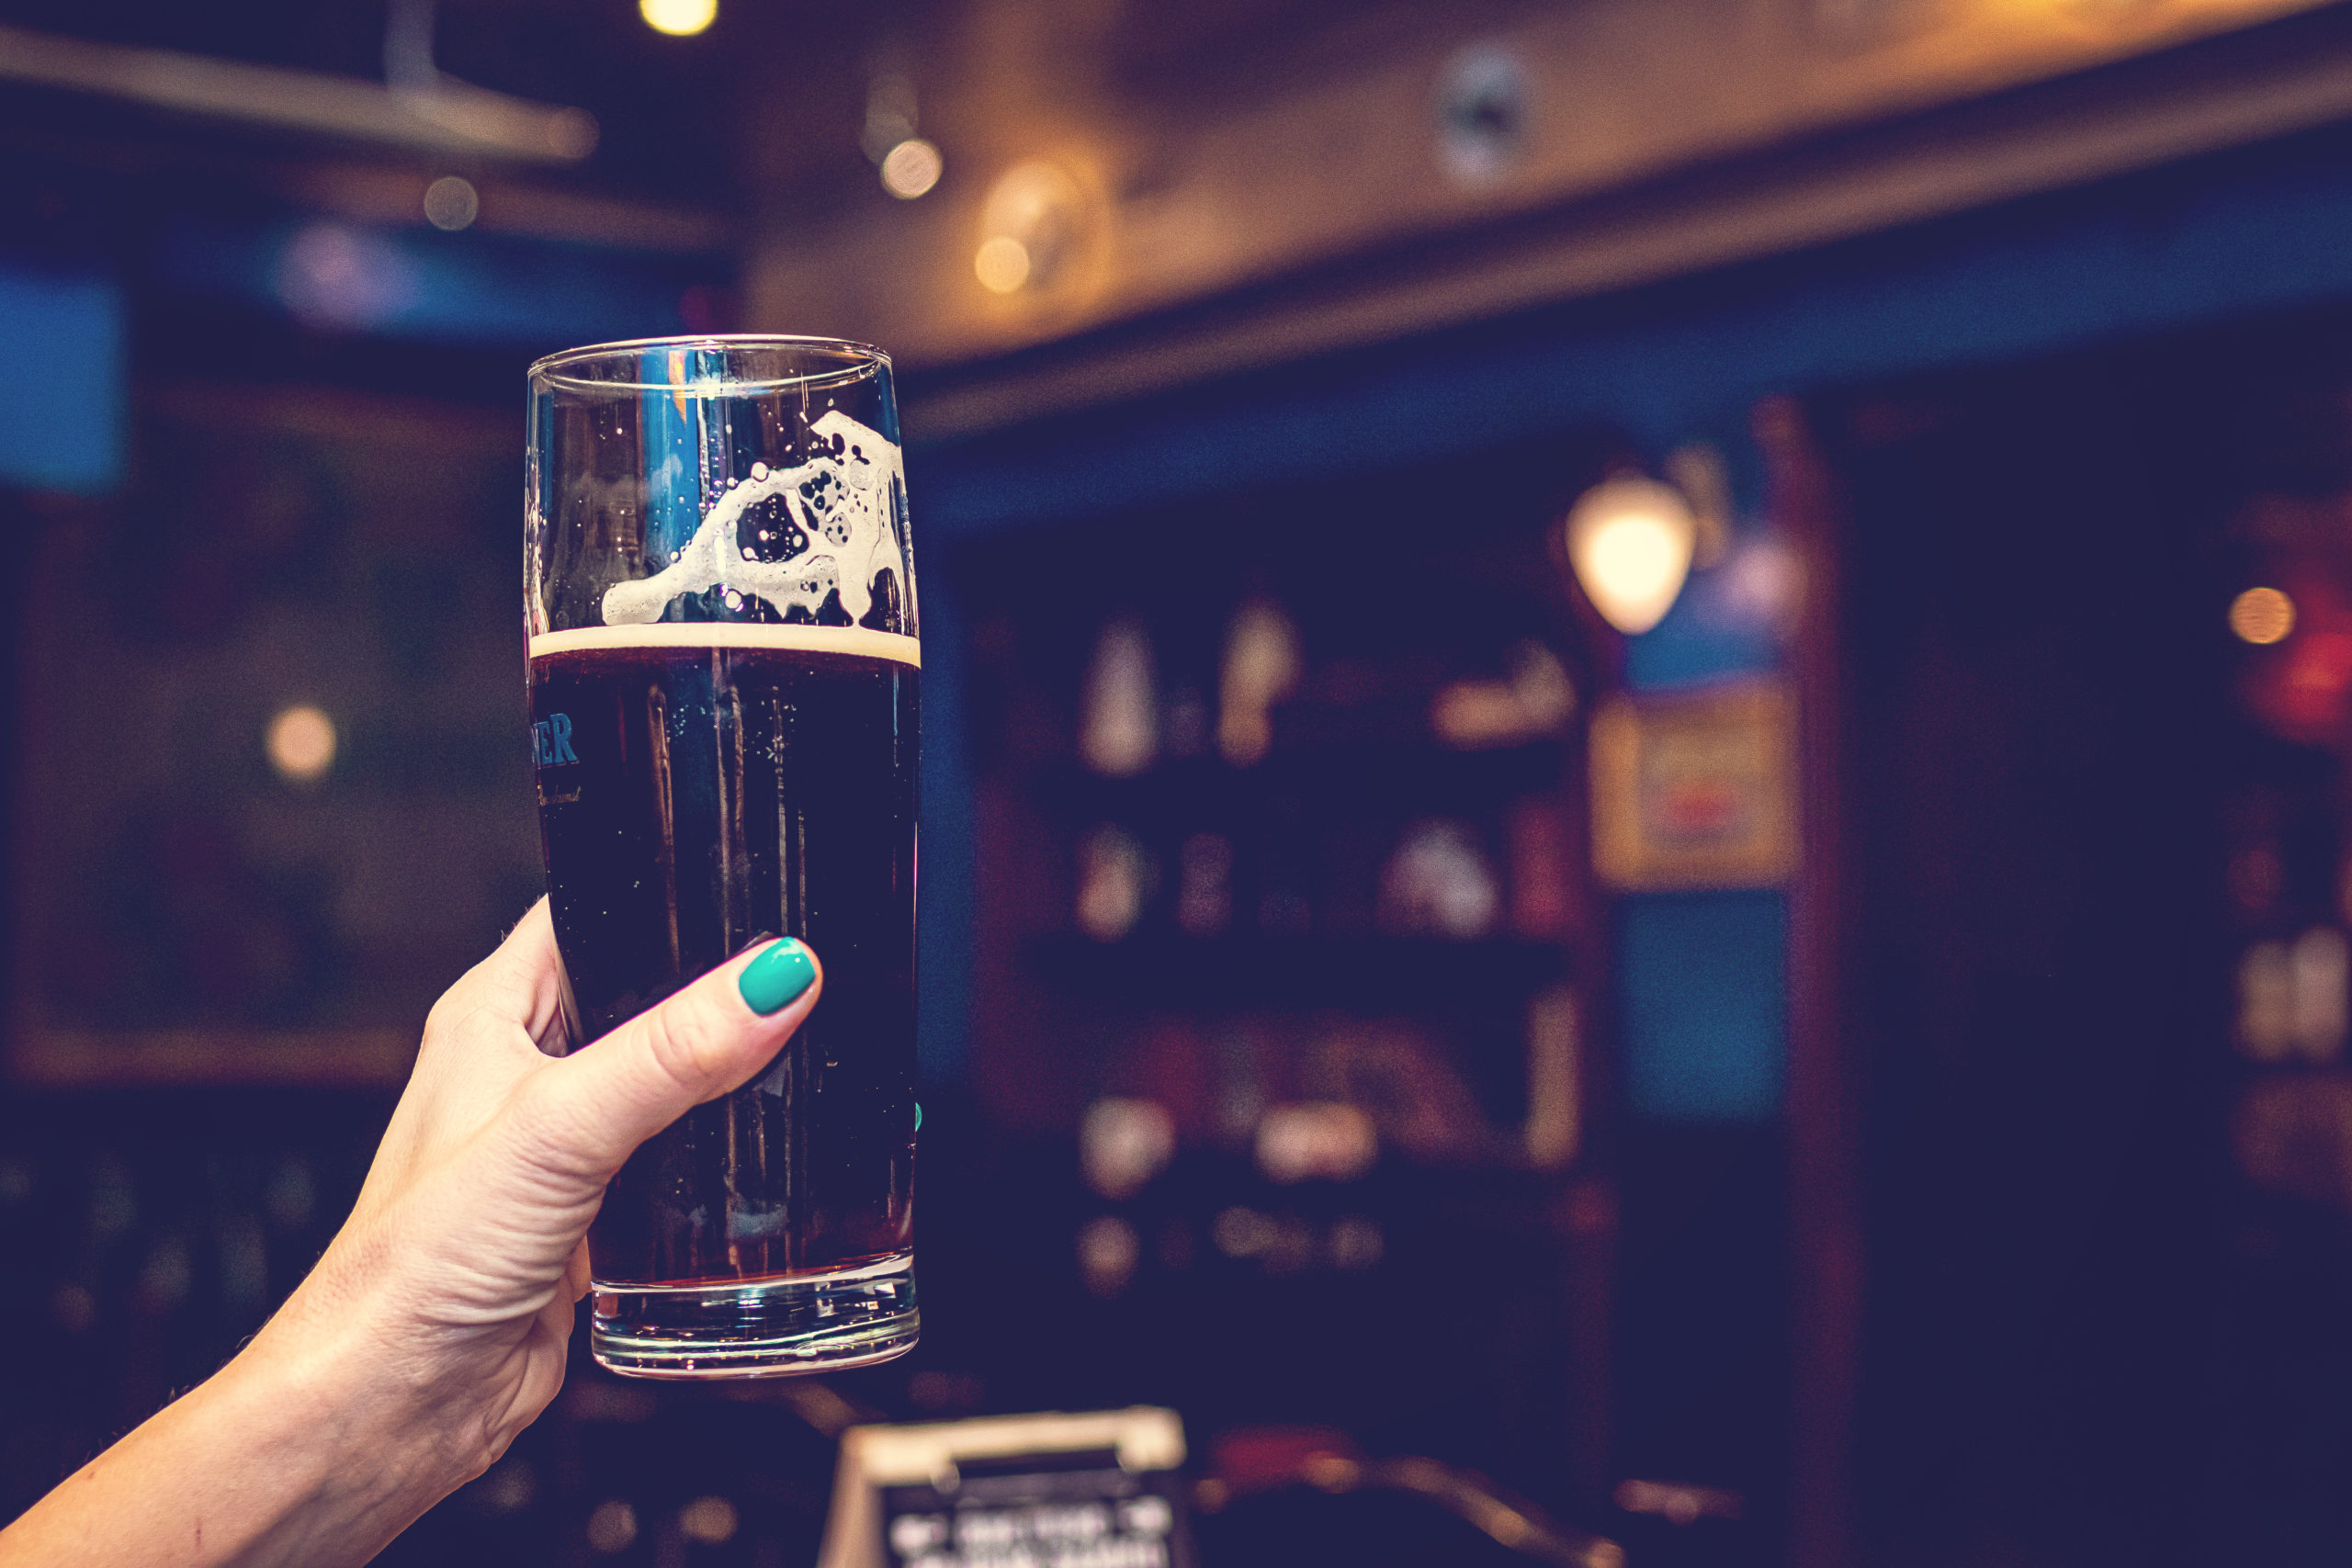 Local pubs will win customers back first